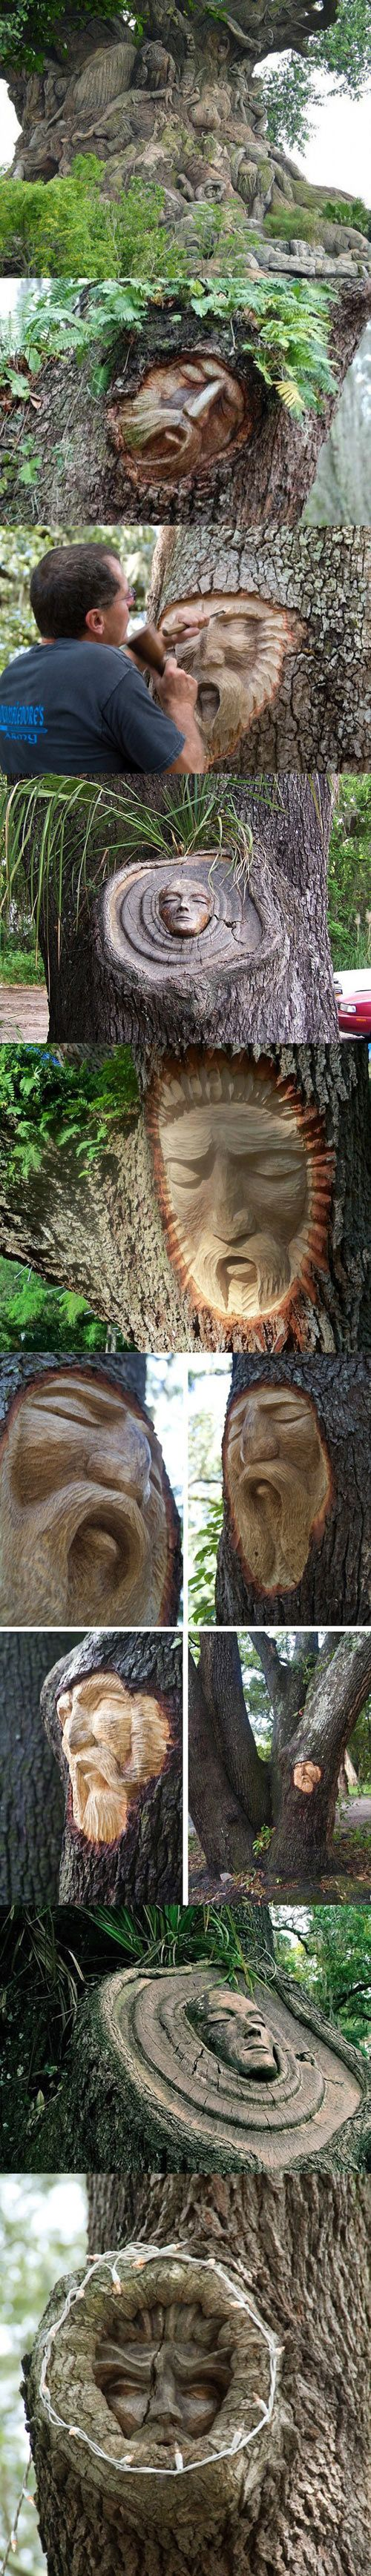 Tree carvings**Other than the 1st one which is in Disney World